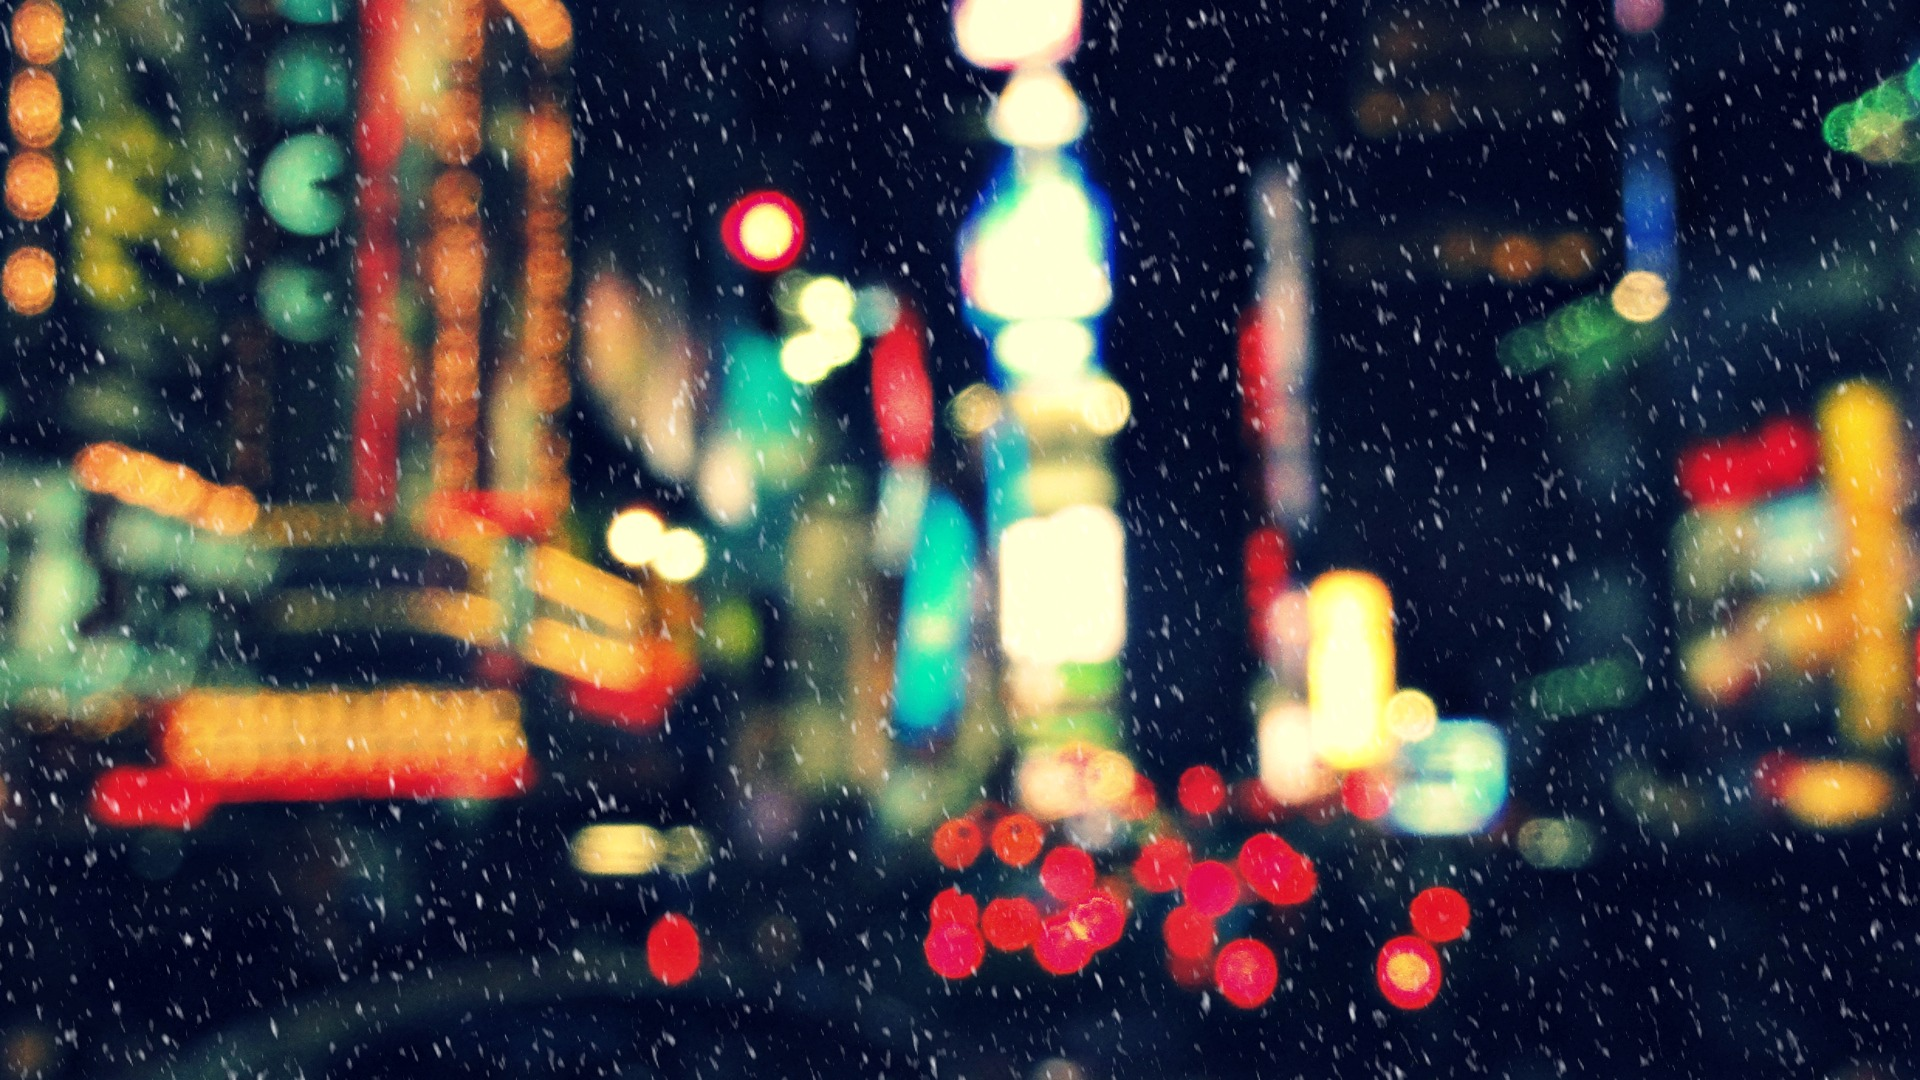 17 Reasons Why I Dream Of Living In A Big City